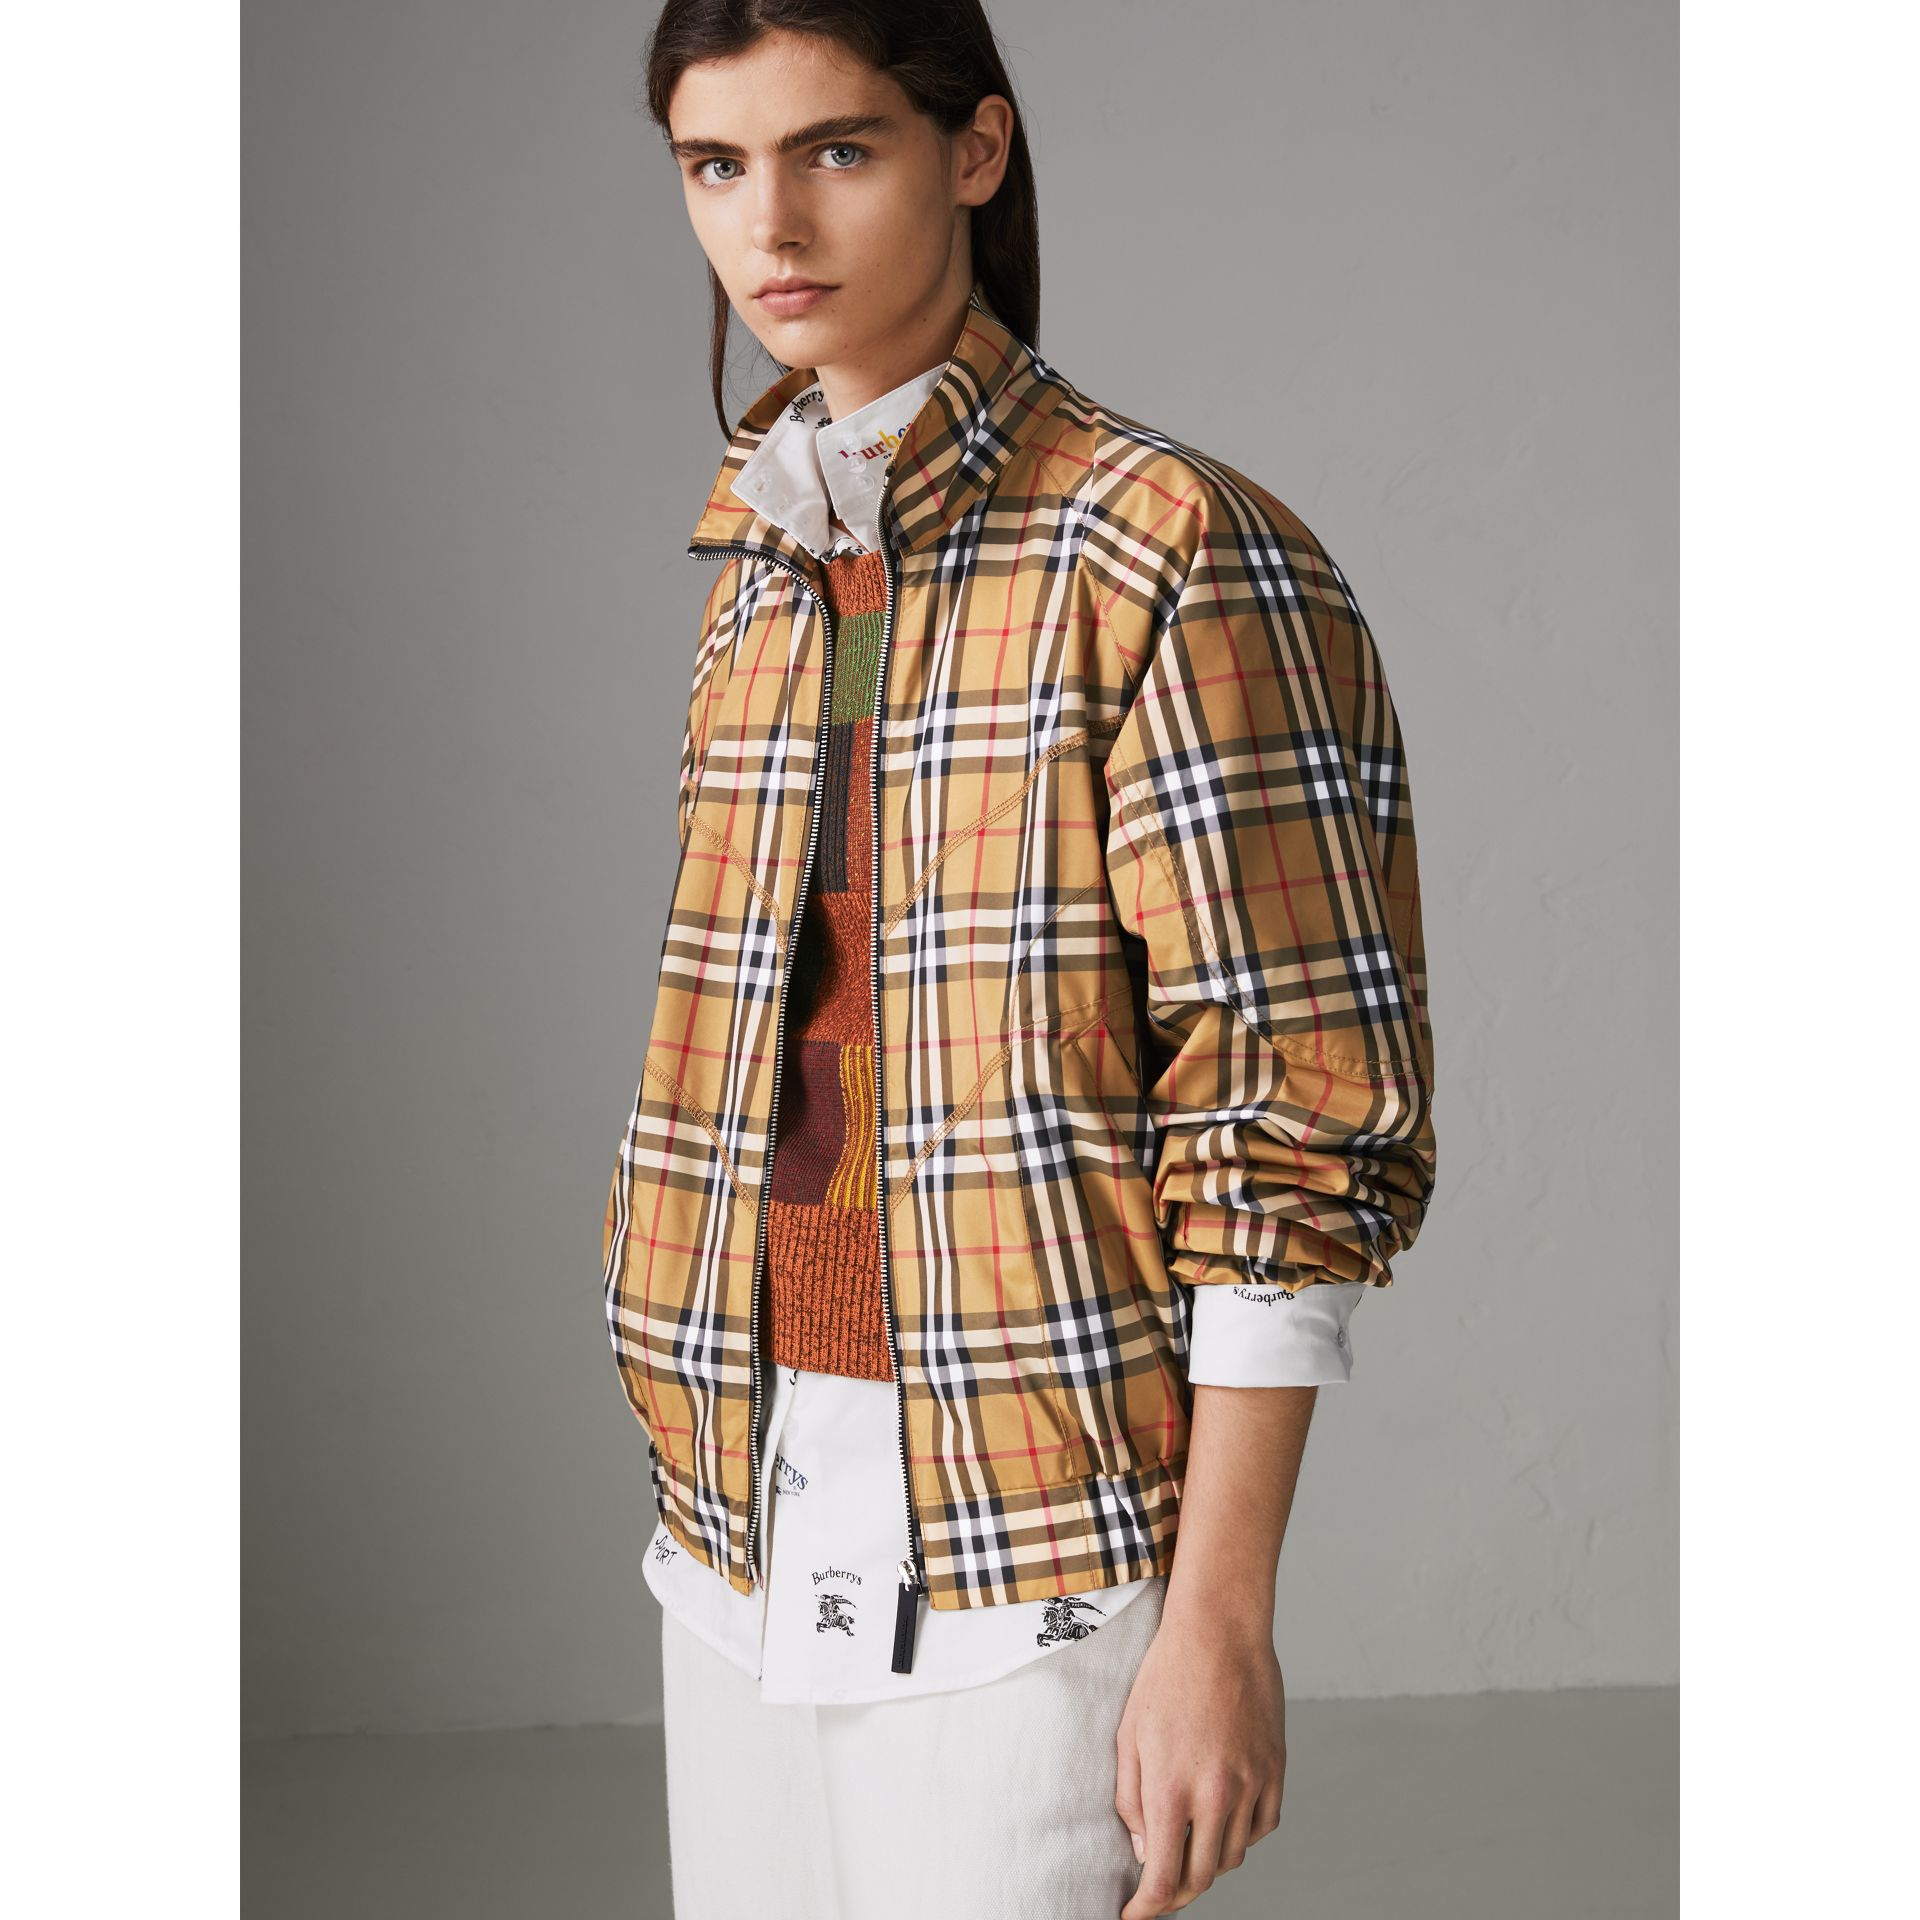 Topstitch Detail Vintage Check Harrington Jacket in Antique Yellow - Women | Burberry Hong Kong - gallery image 5